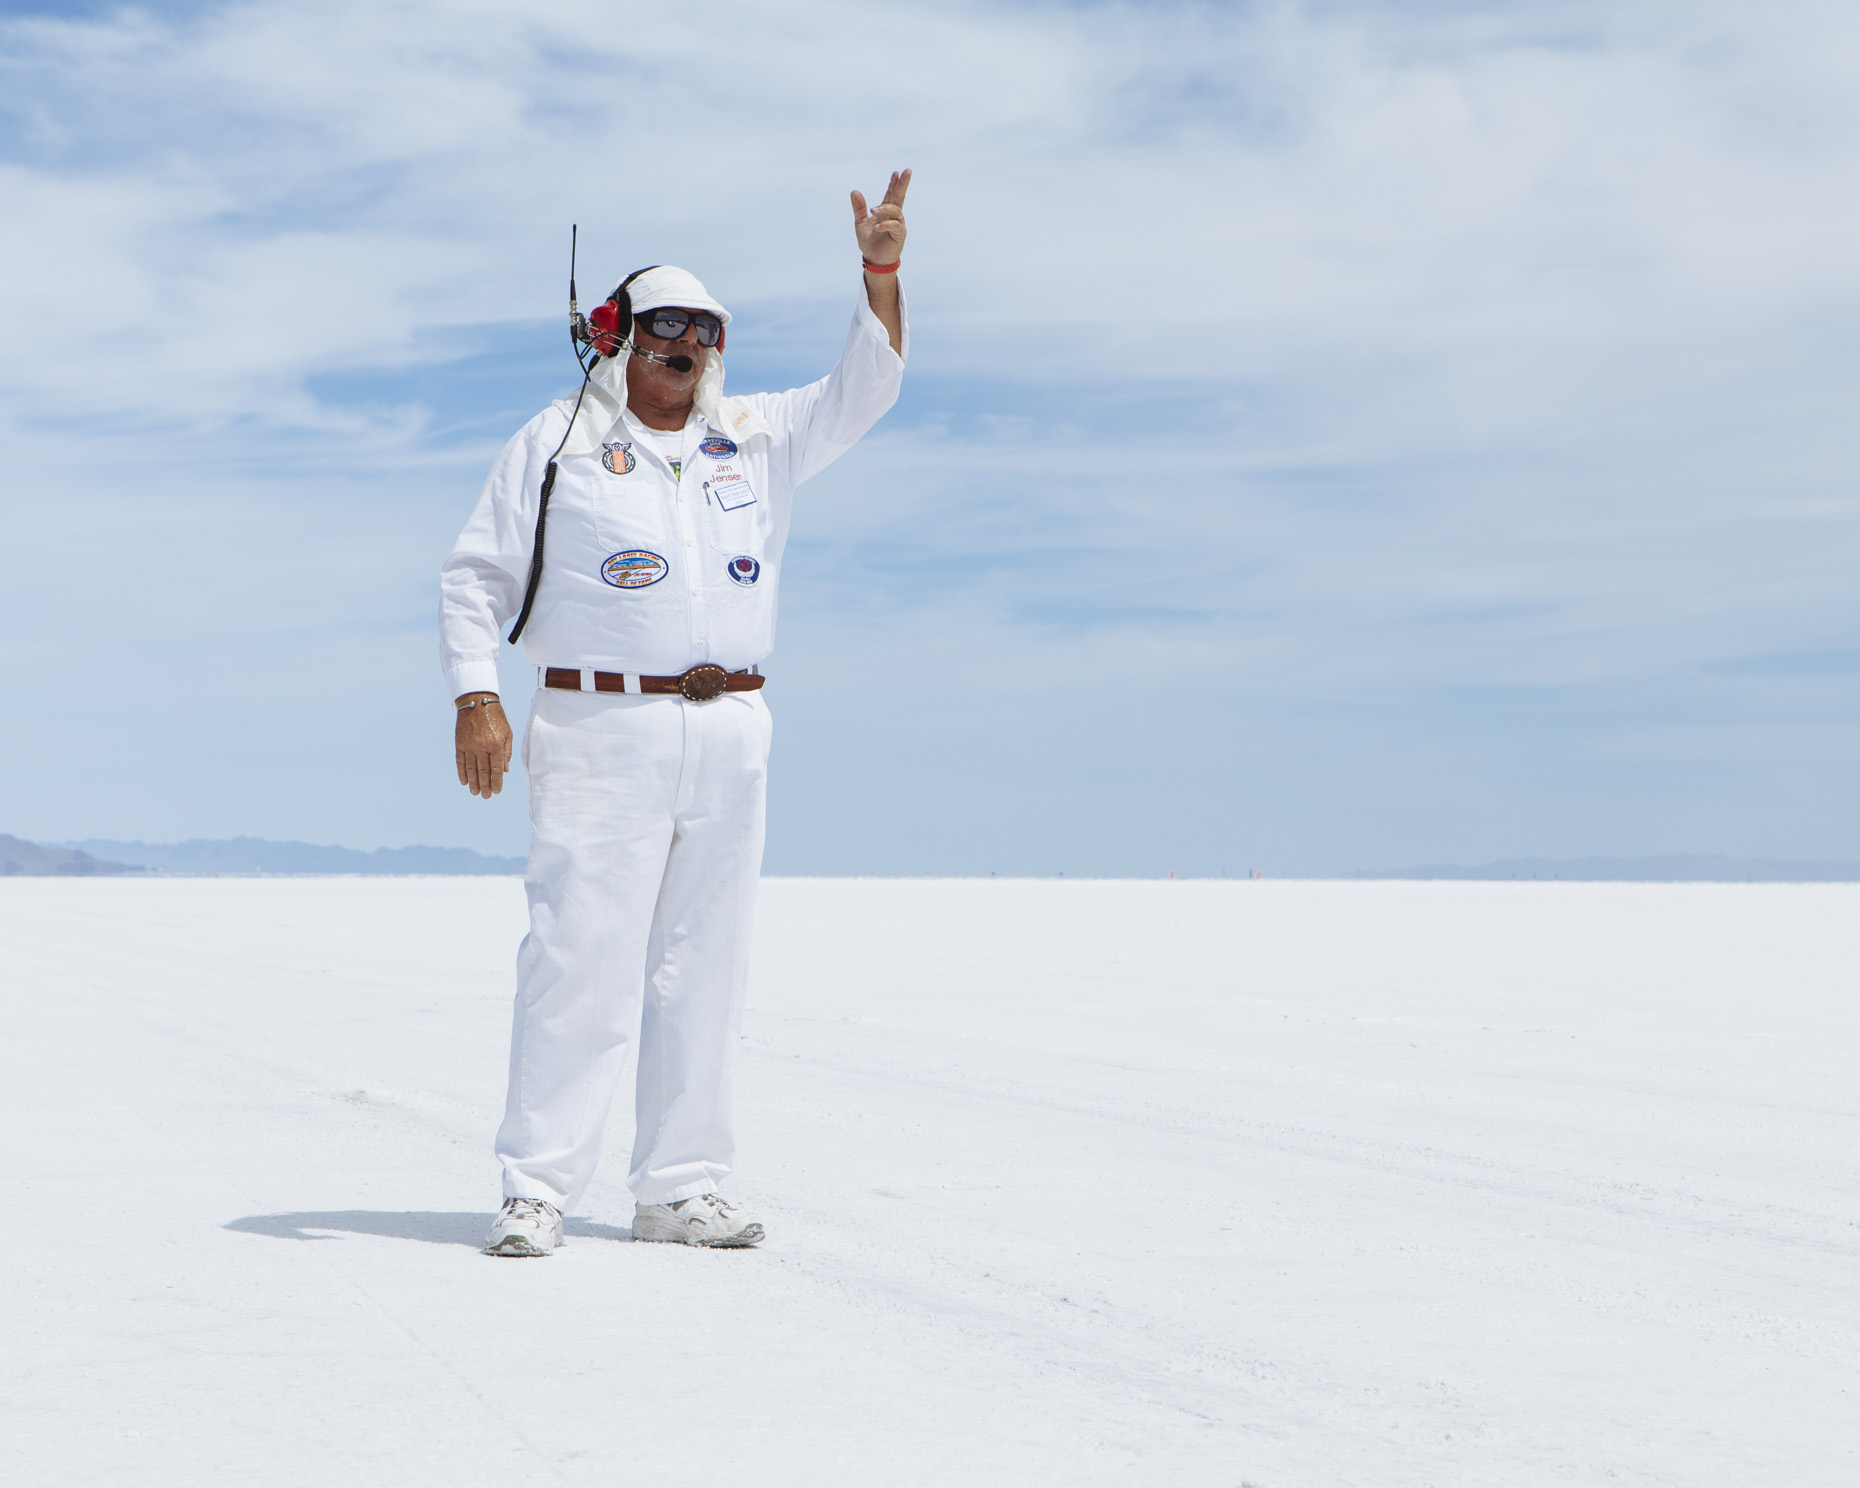 Jim Jensen, Speed Week timing official on the Bonneville Salt Flats, Utah - Paul Edmondson